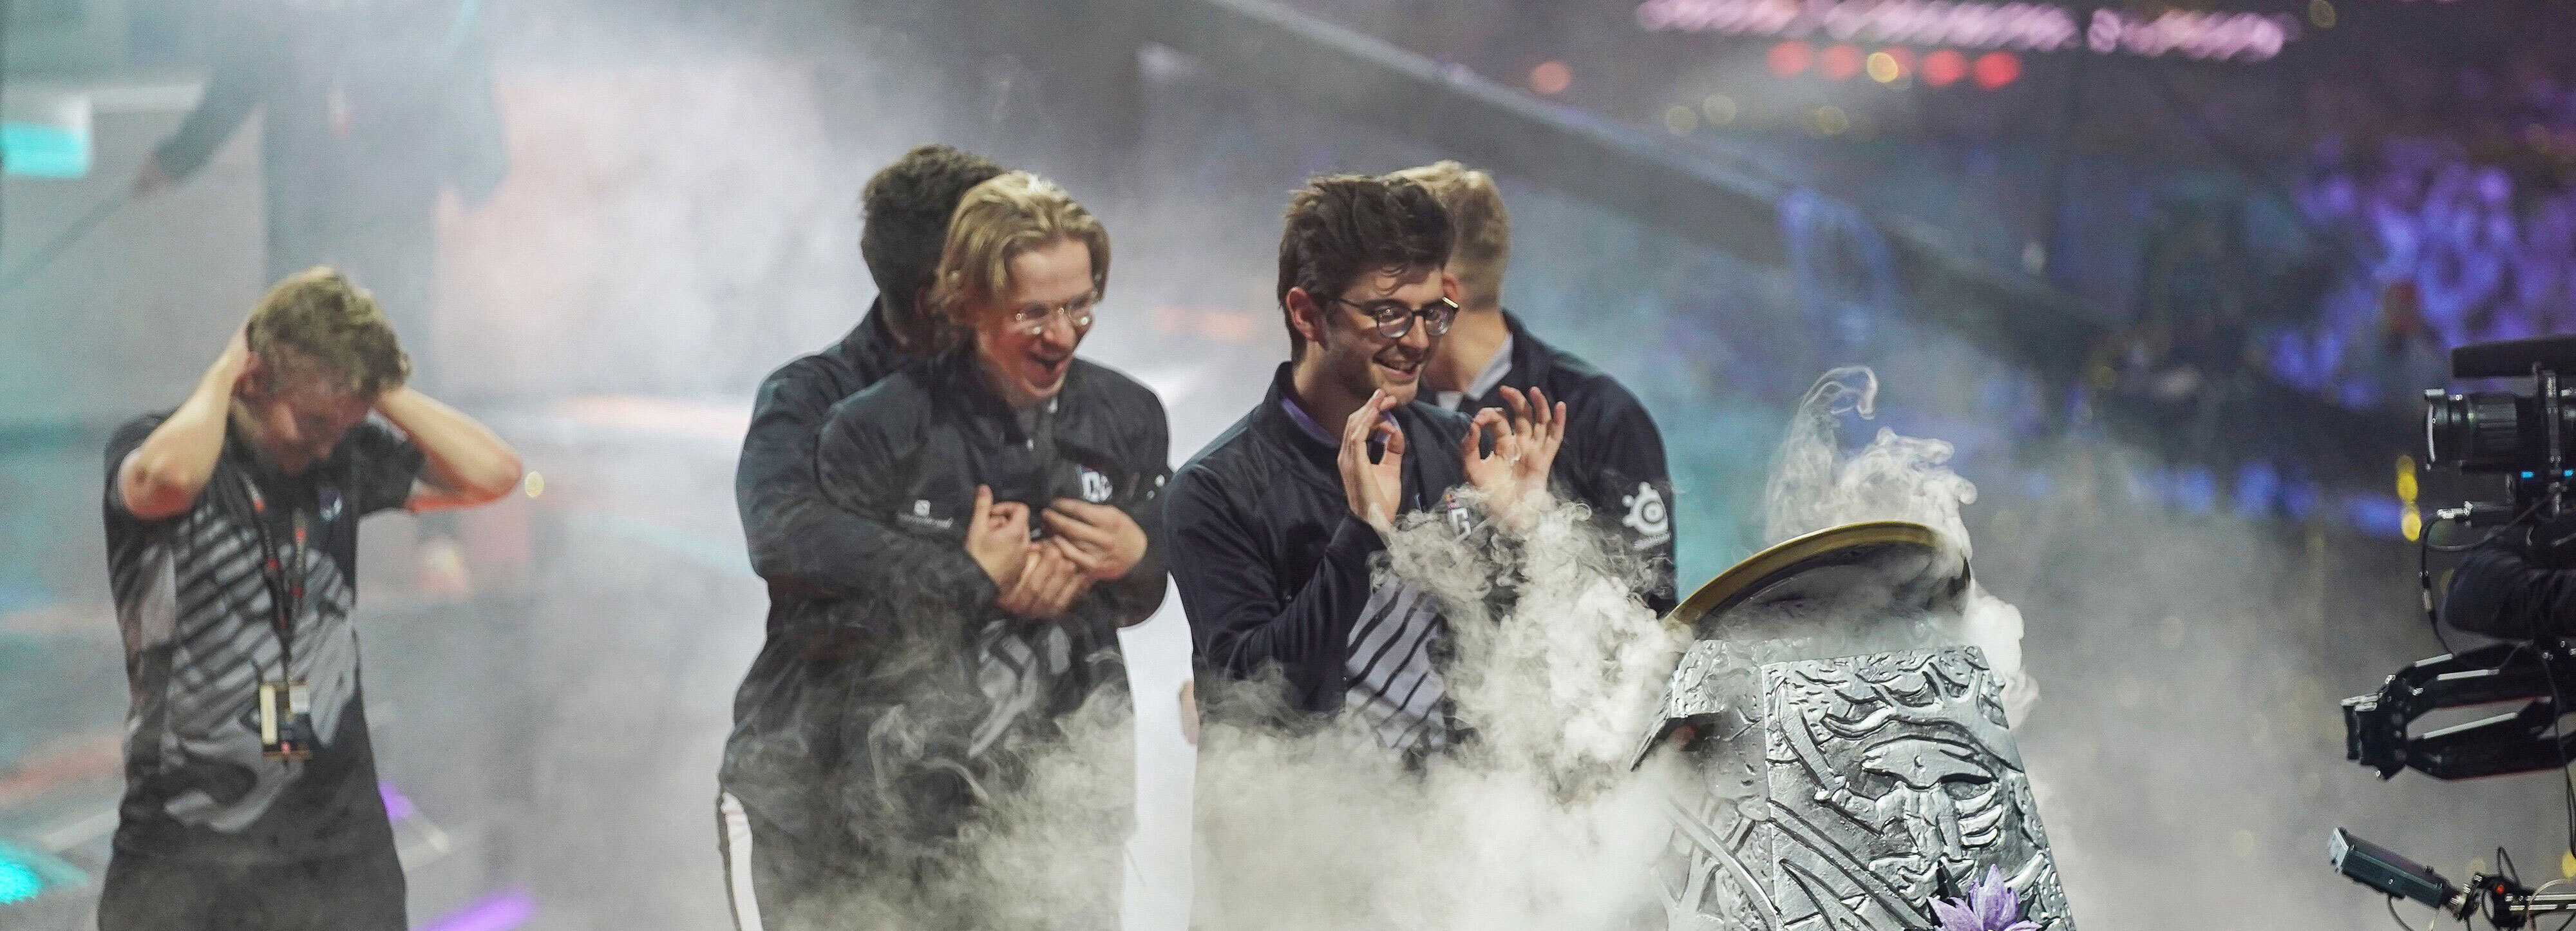 OG winning the Aegis at TI9